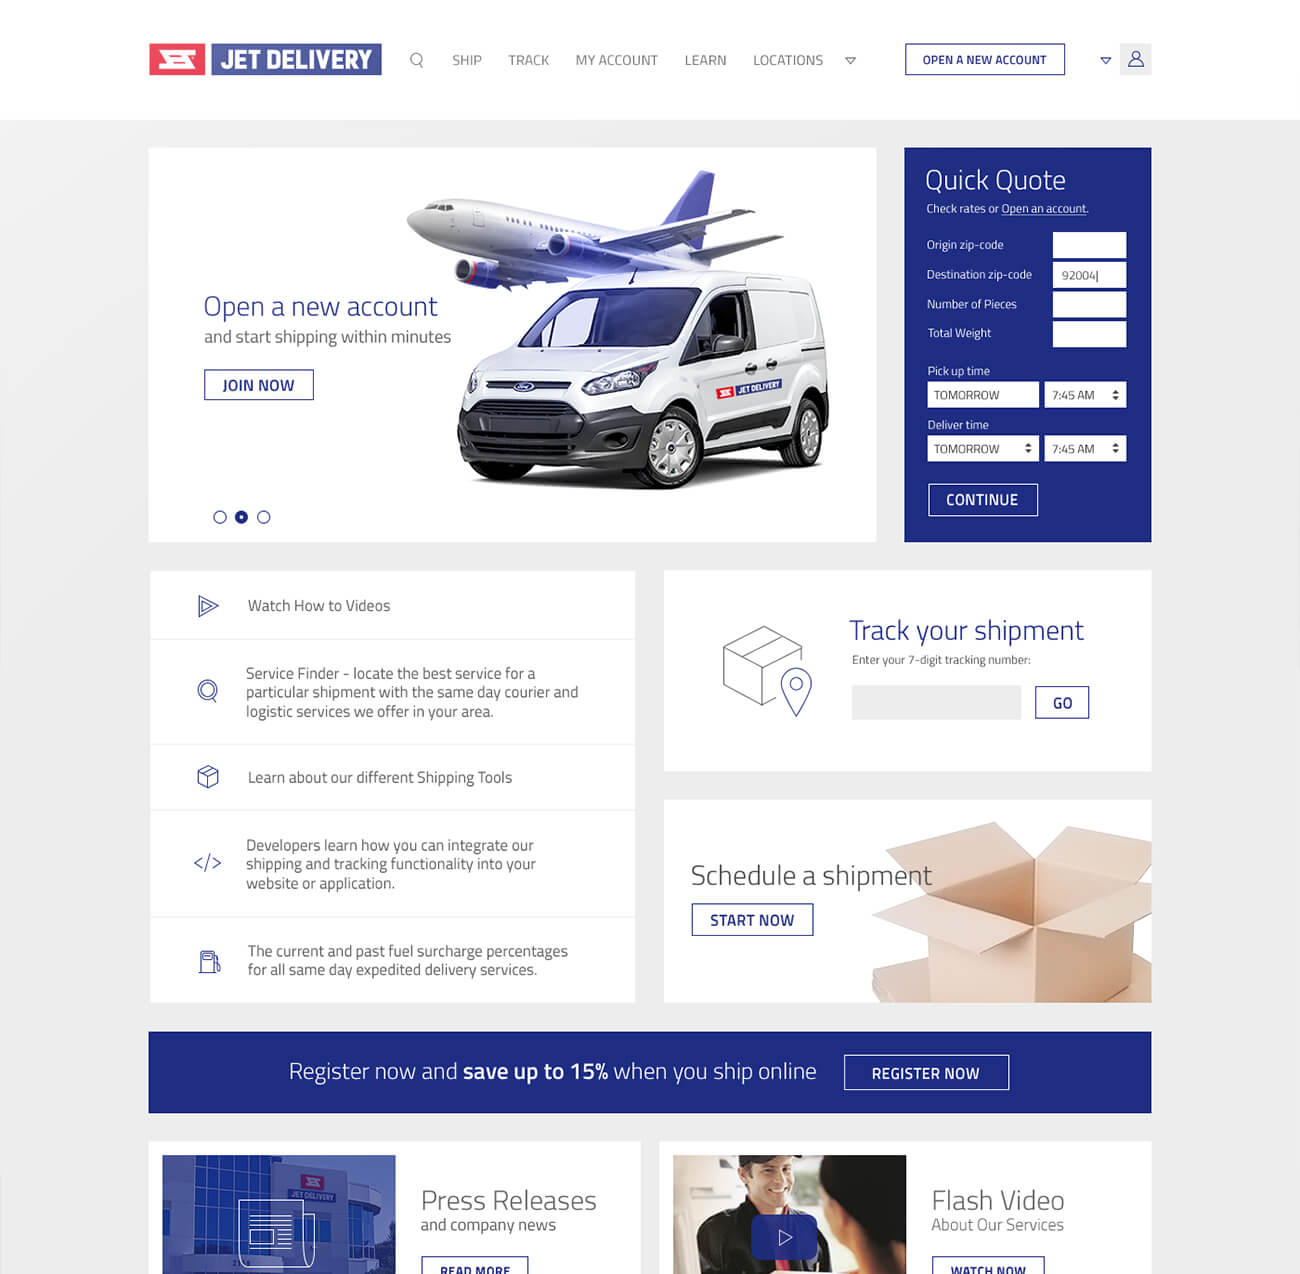 Finsweet Jet Delivery website branding feature for web design